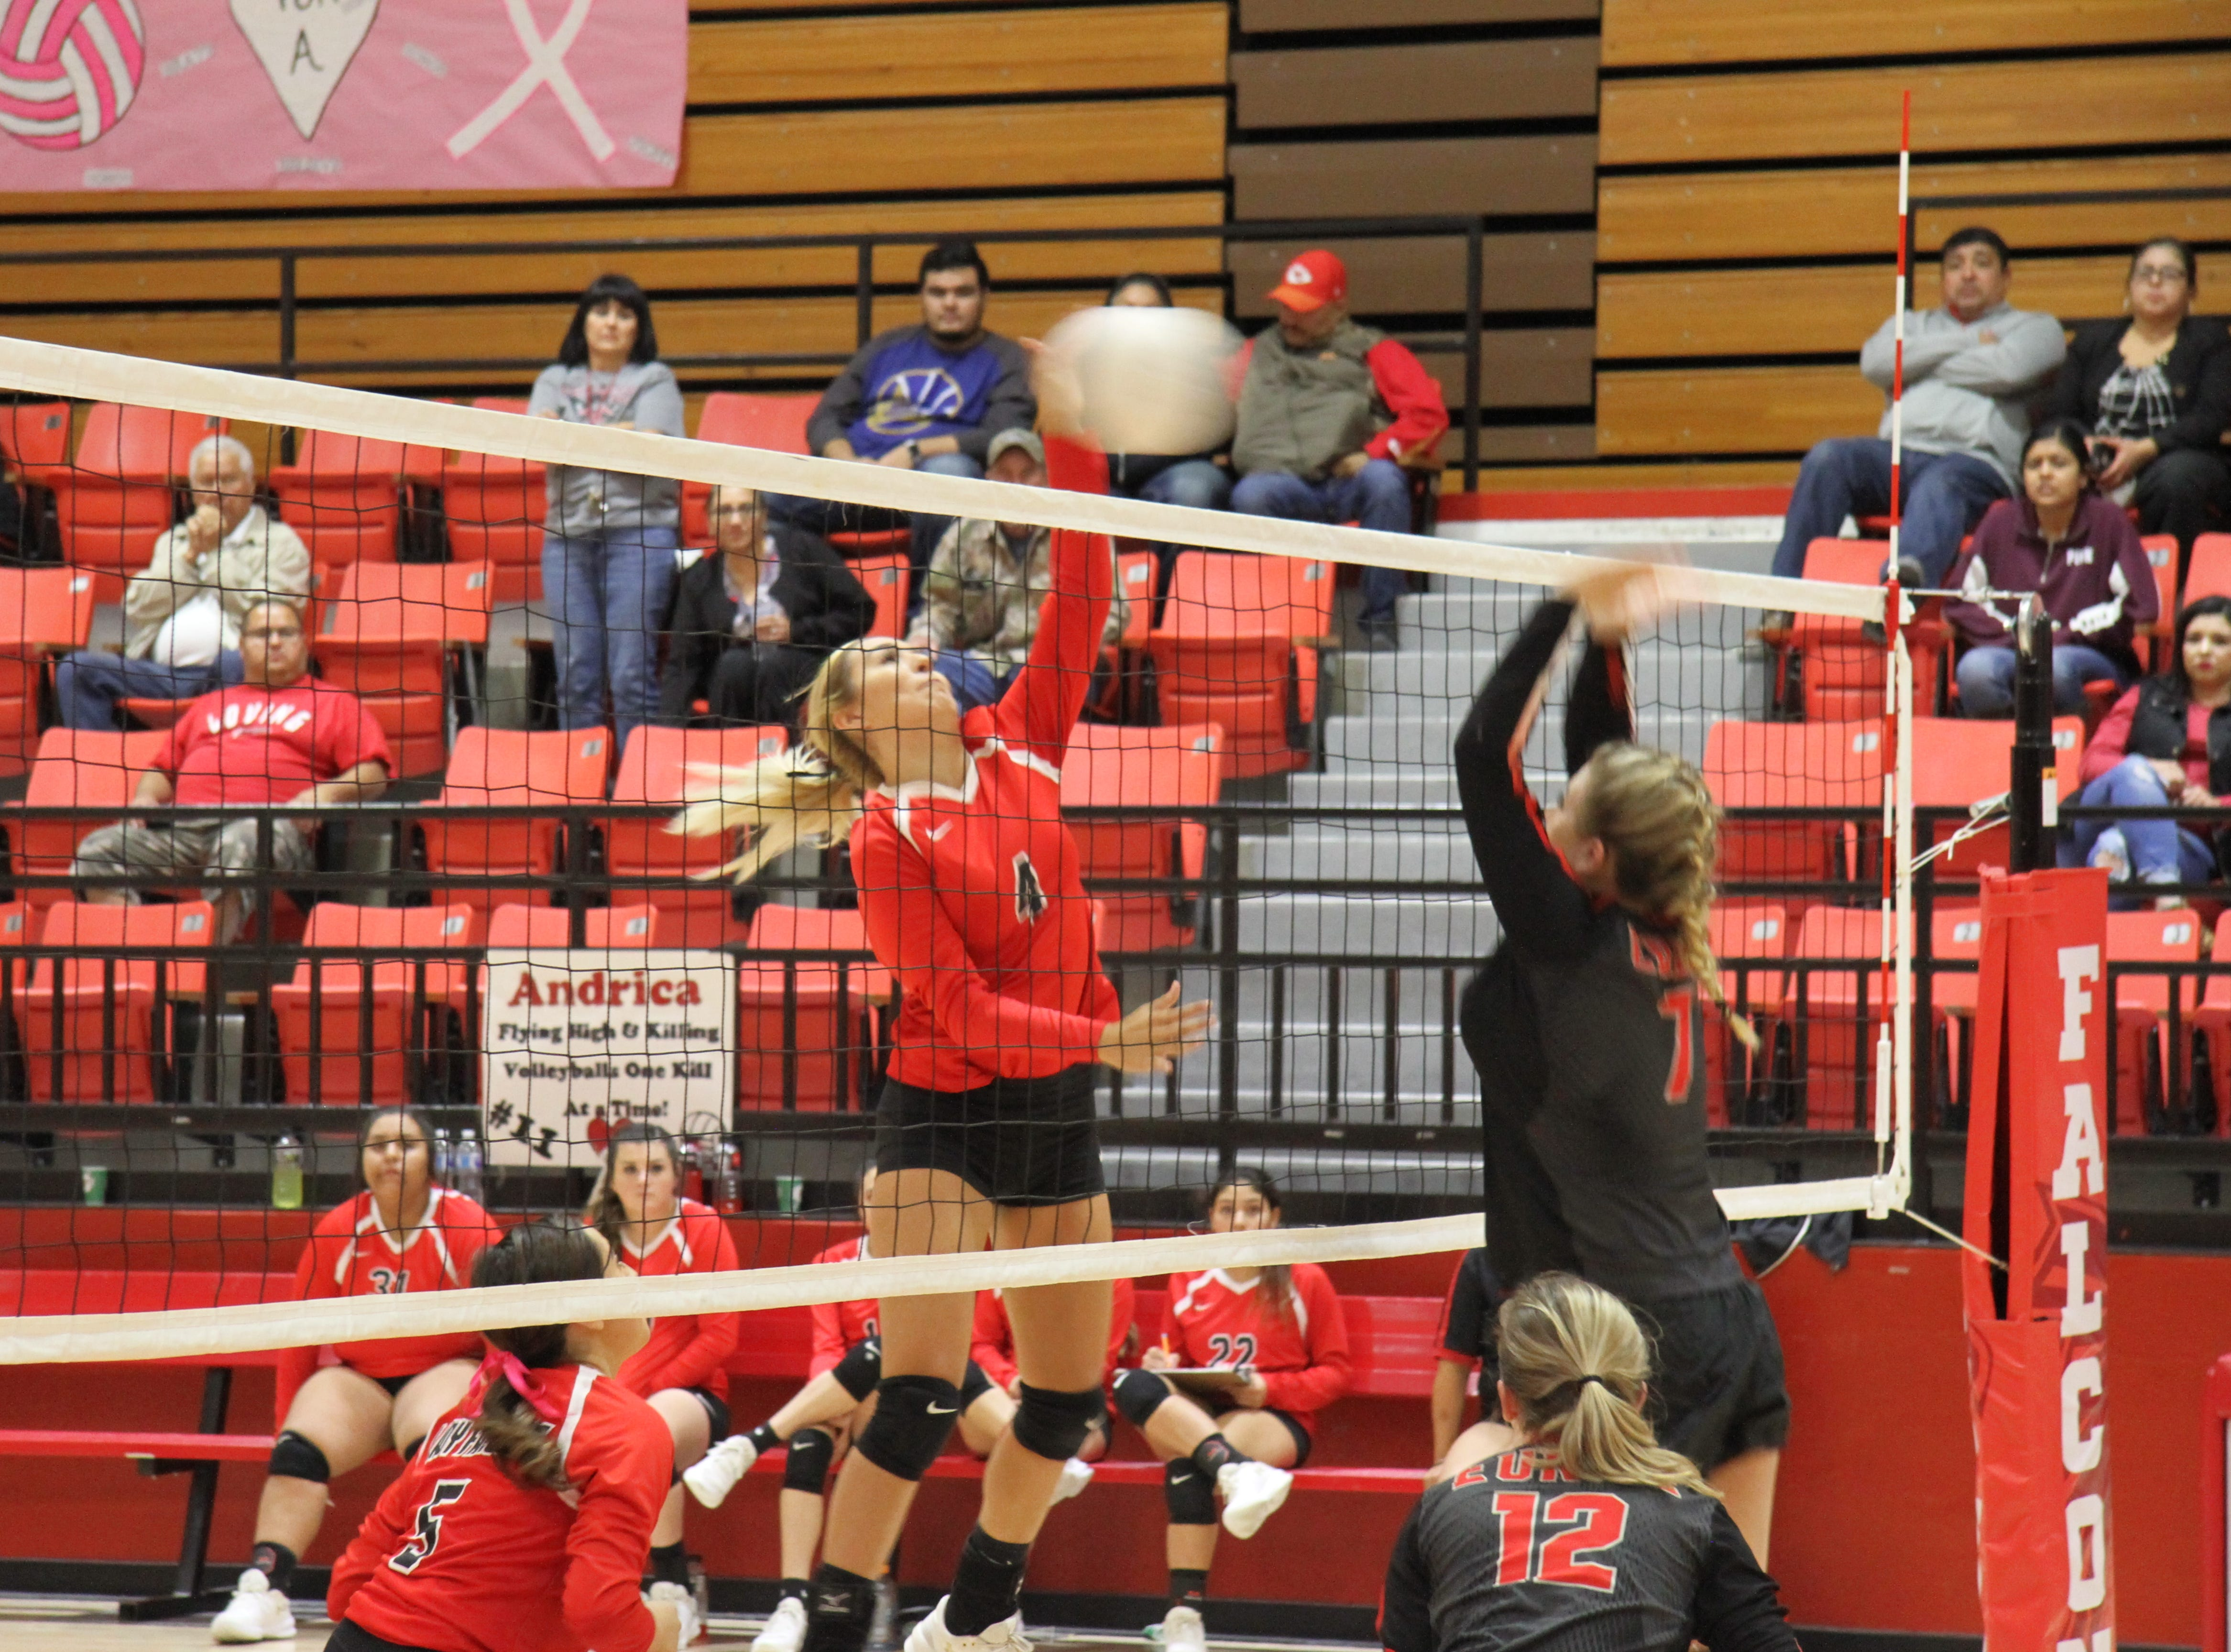 Chassity Onzures loads up for a spike during Thursday's match against Eunice. Loving won in four sets.